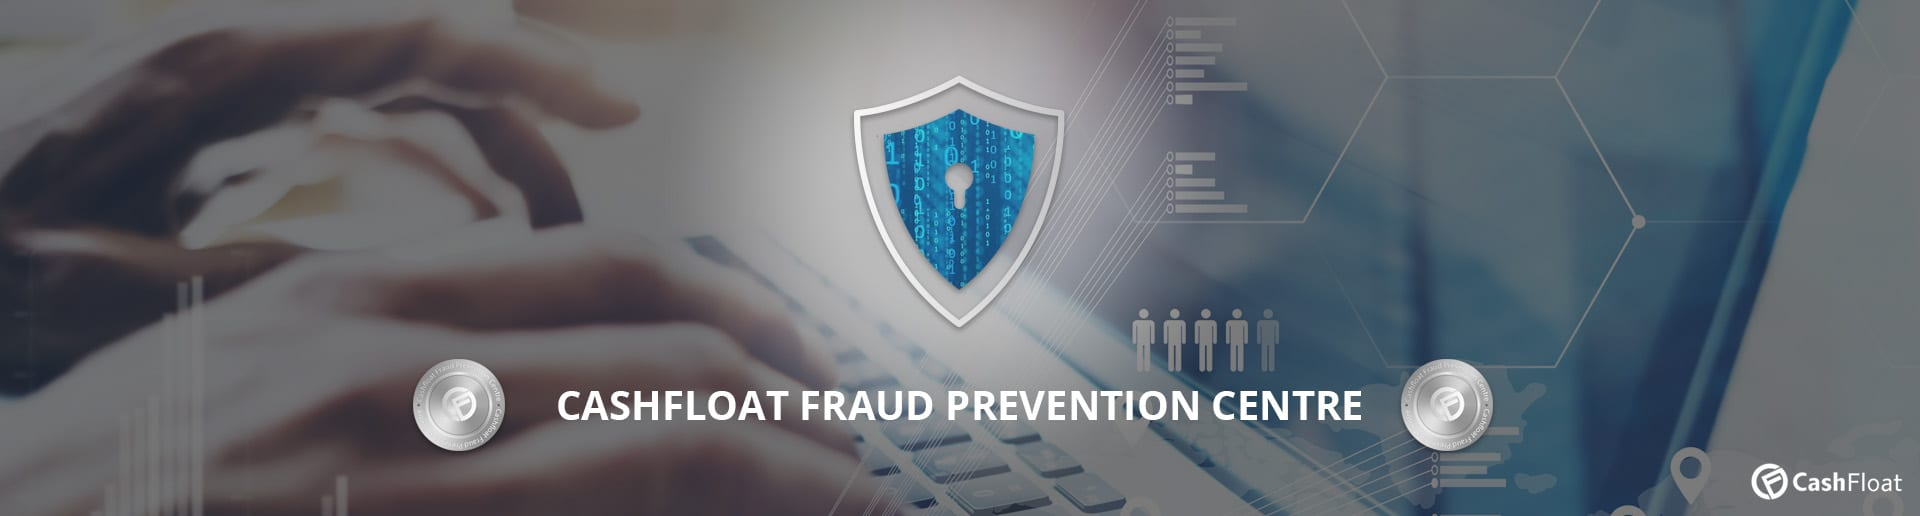 Online Fraud Prevention Centre Find And Report Scams Here Cashfloat